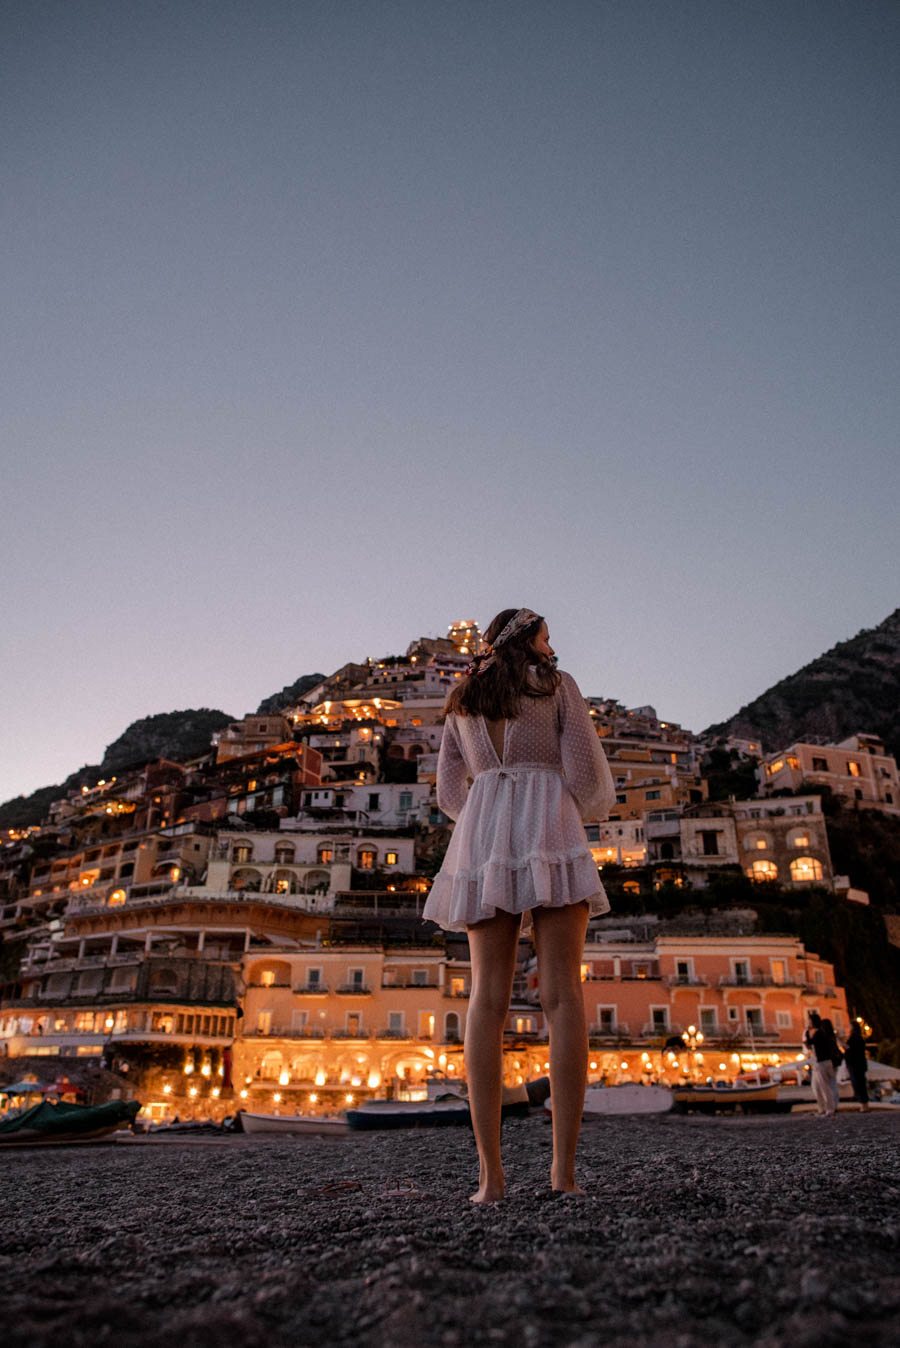 Travel Guide for the most beautiful photo locations in Positano. Get the perfect Instagram photos in Positano.